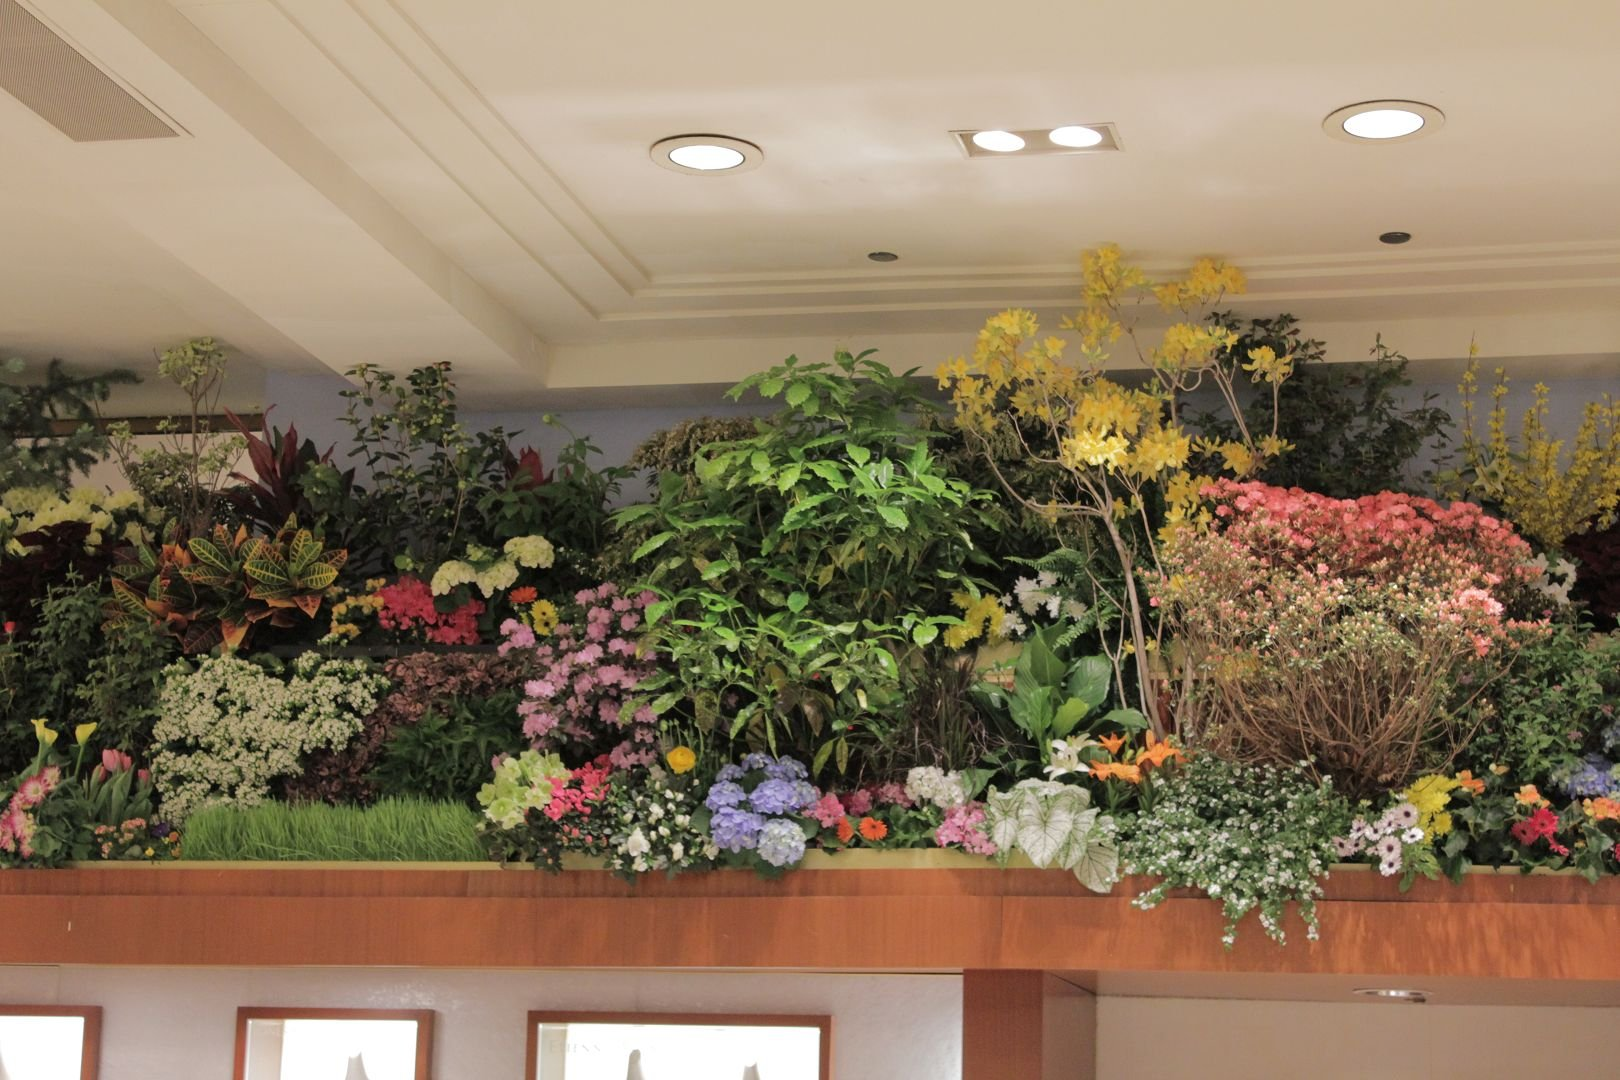 The Macy's Flower Show 2011 Towers of Flowers